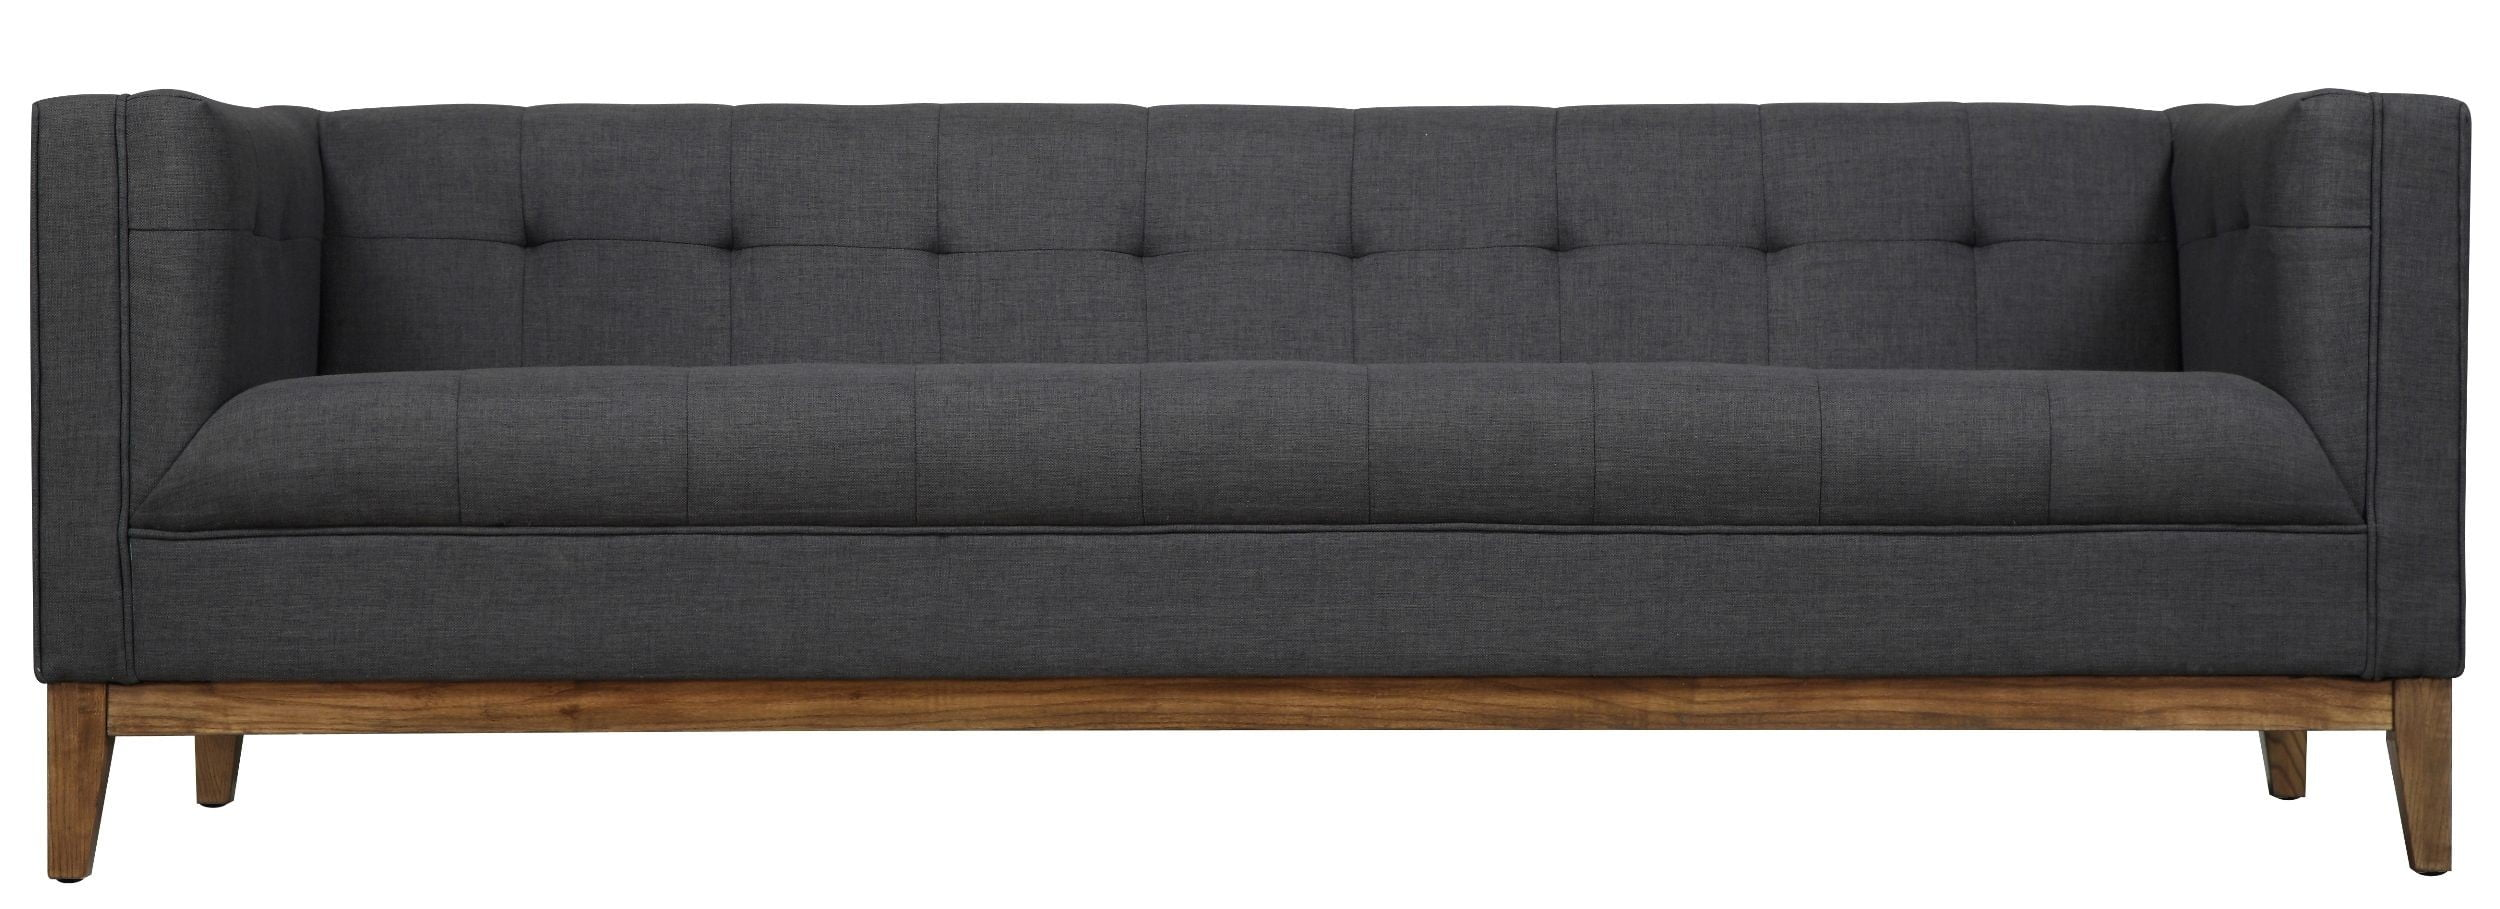 Gavin Gray Linen Sofa From TOV (S32) | Coleman Furniture